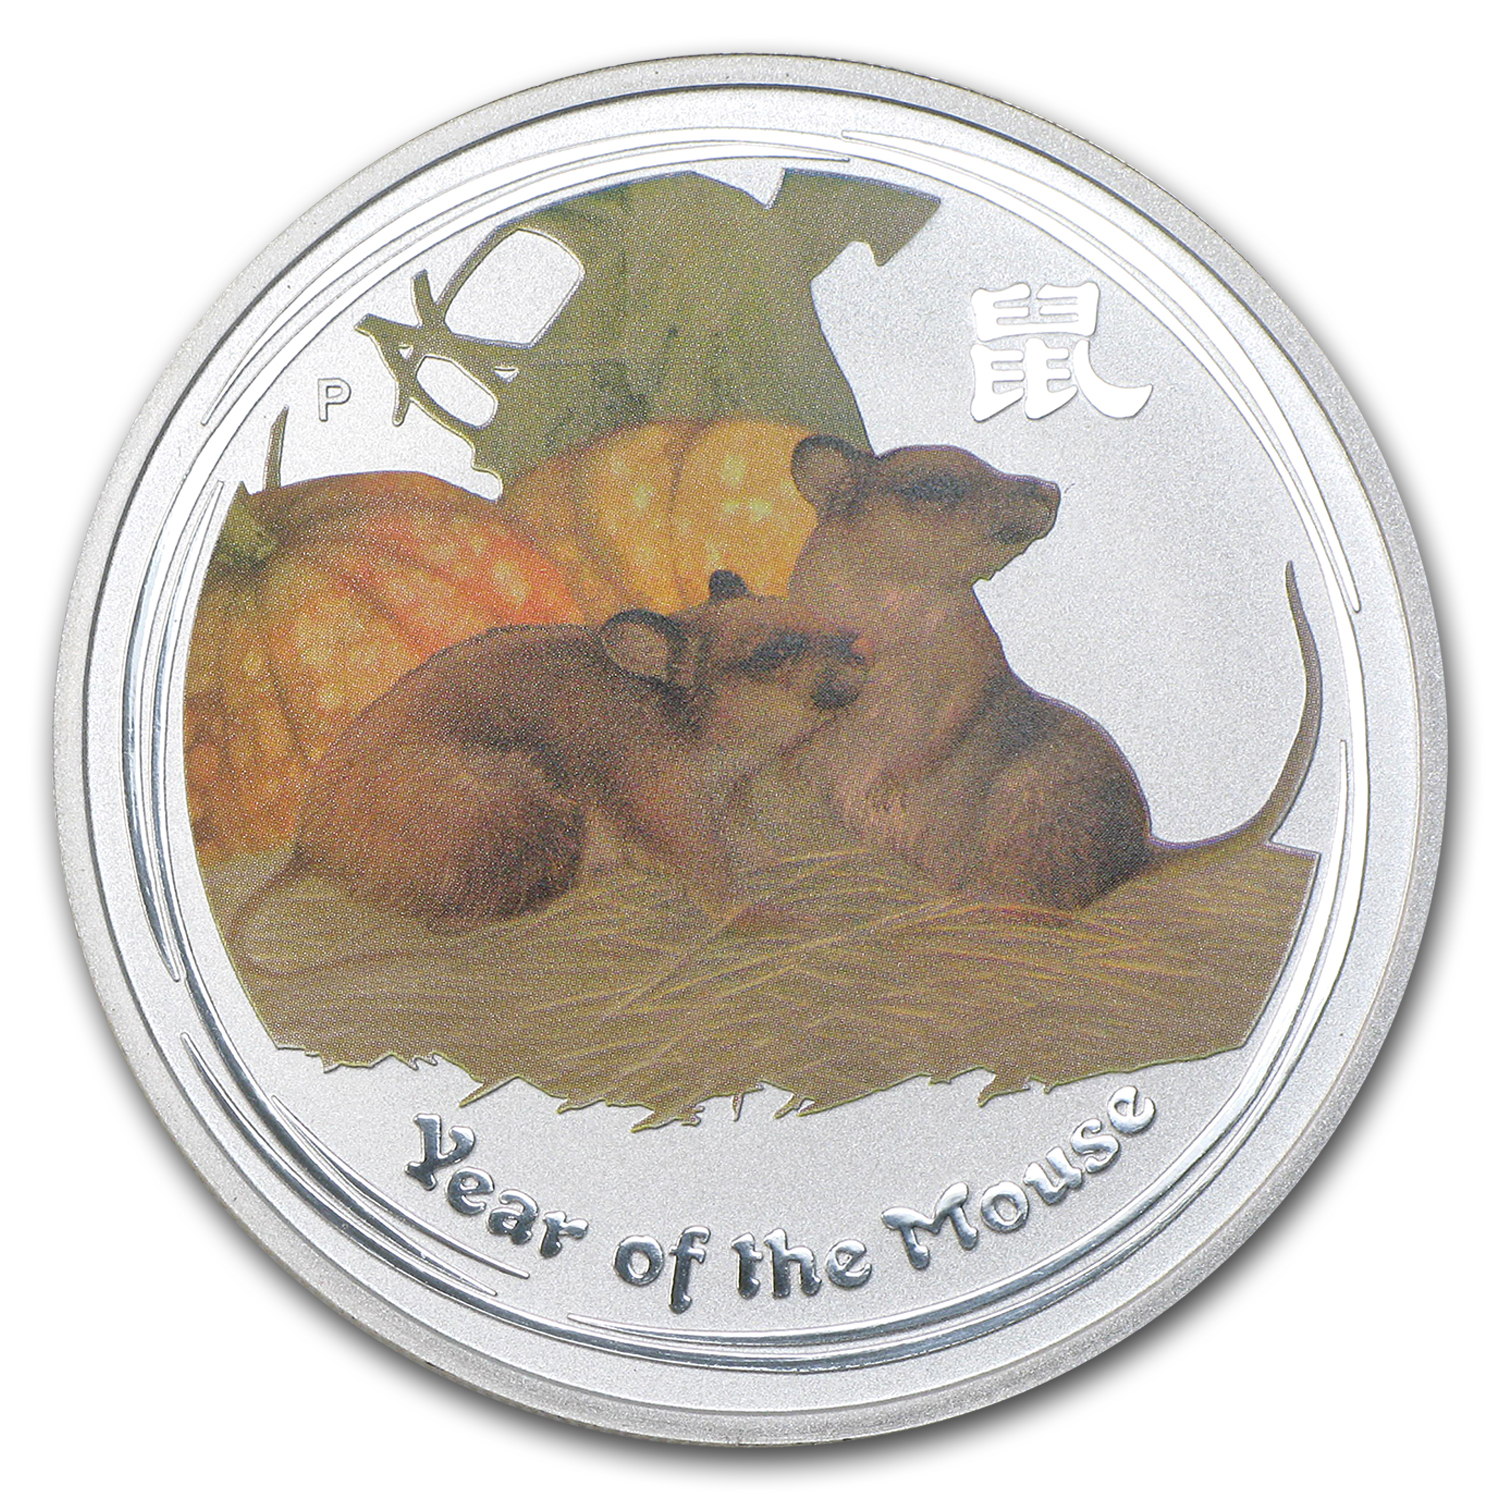 2008 Australia 1 oz Silver Mouse BU (Colorized, Series II)